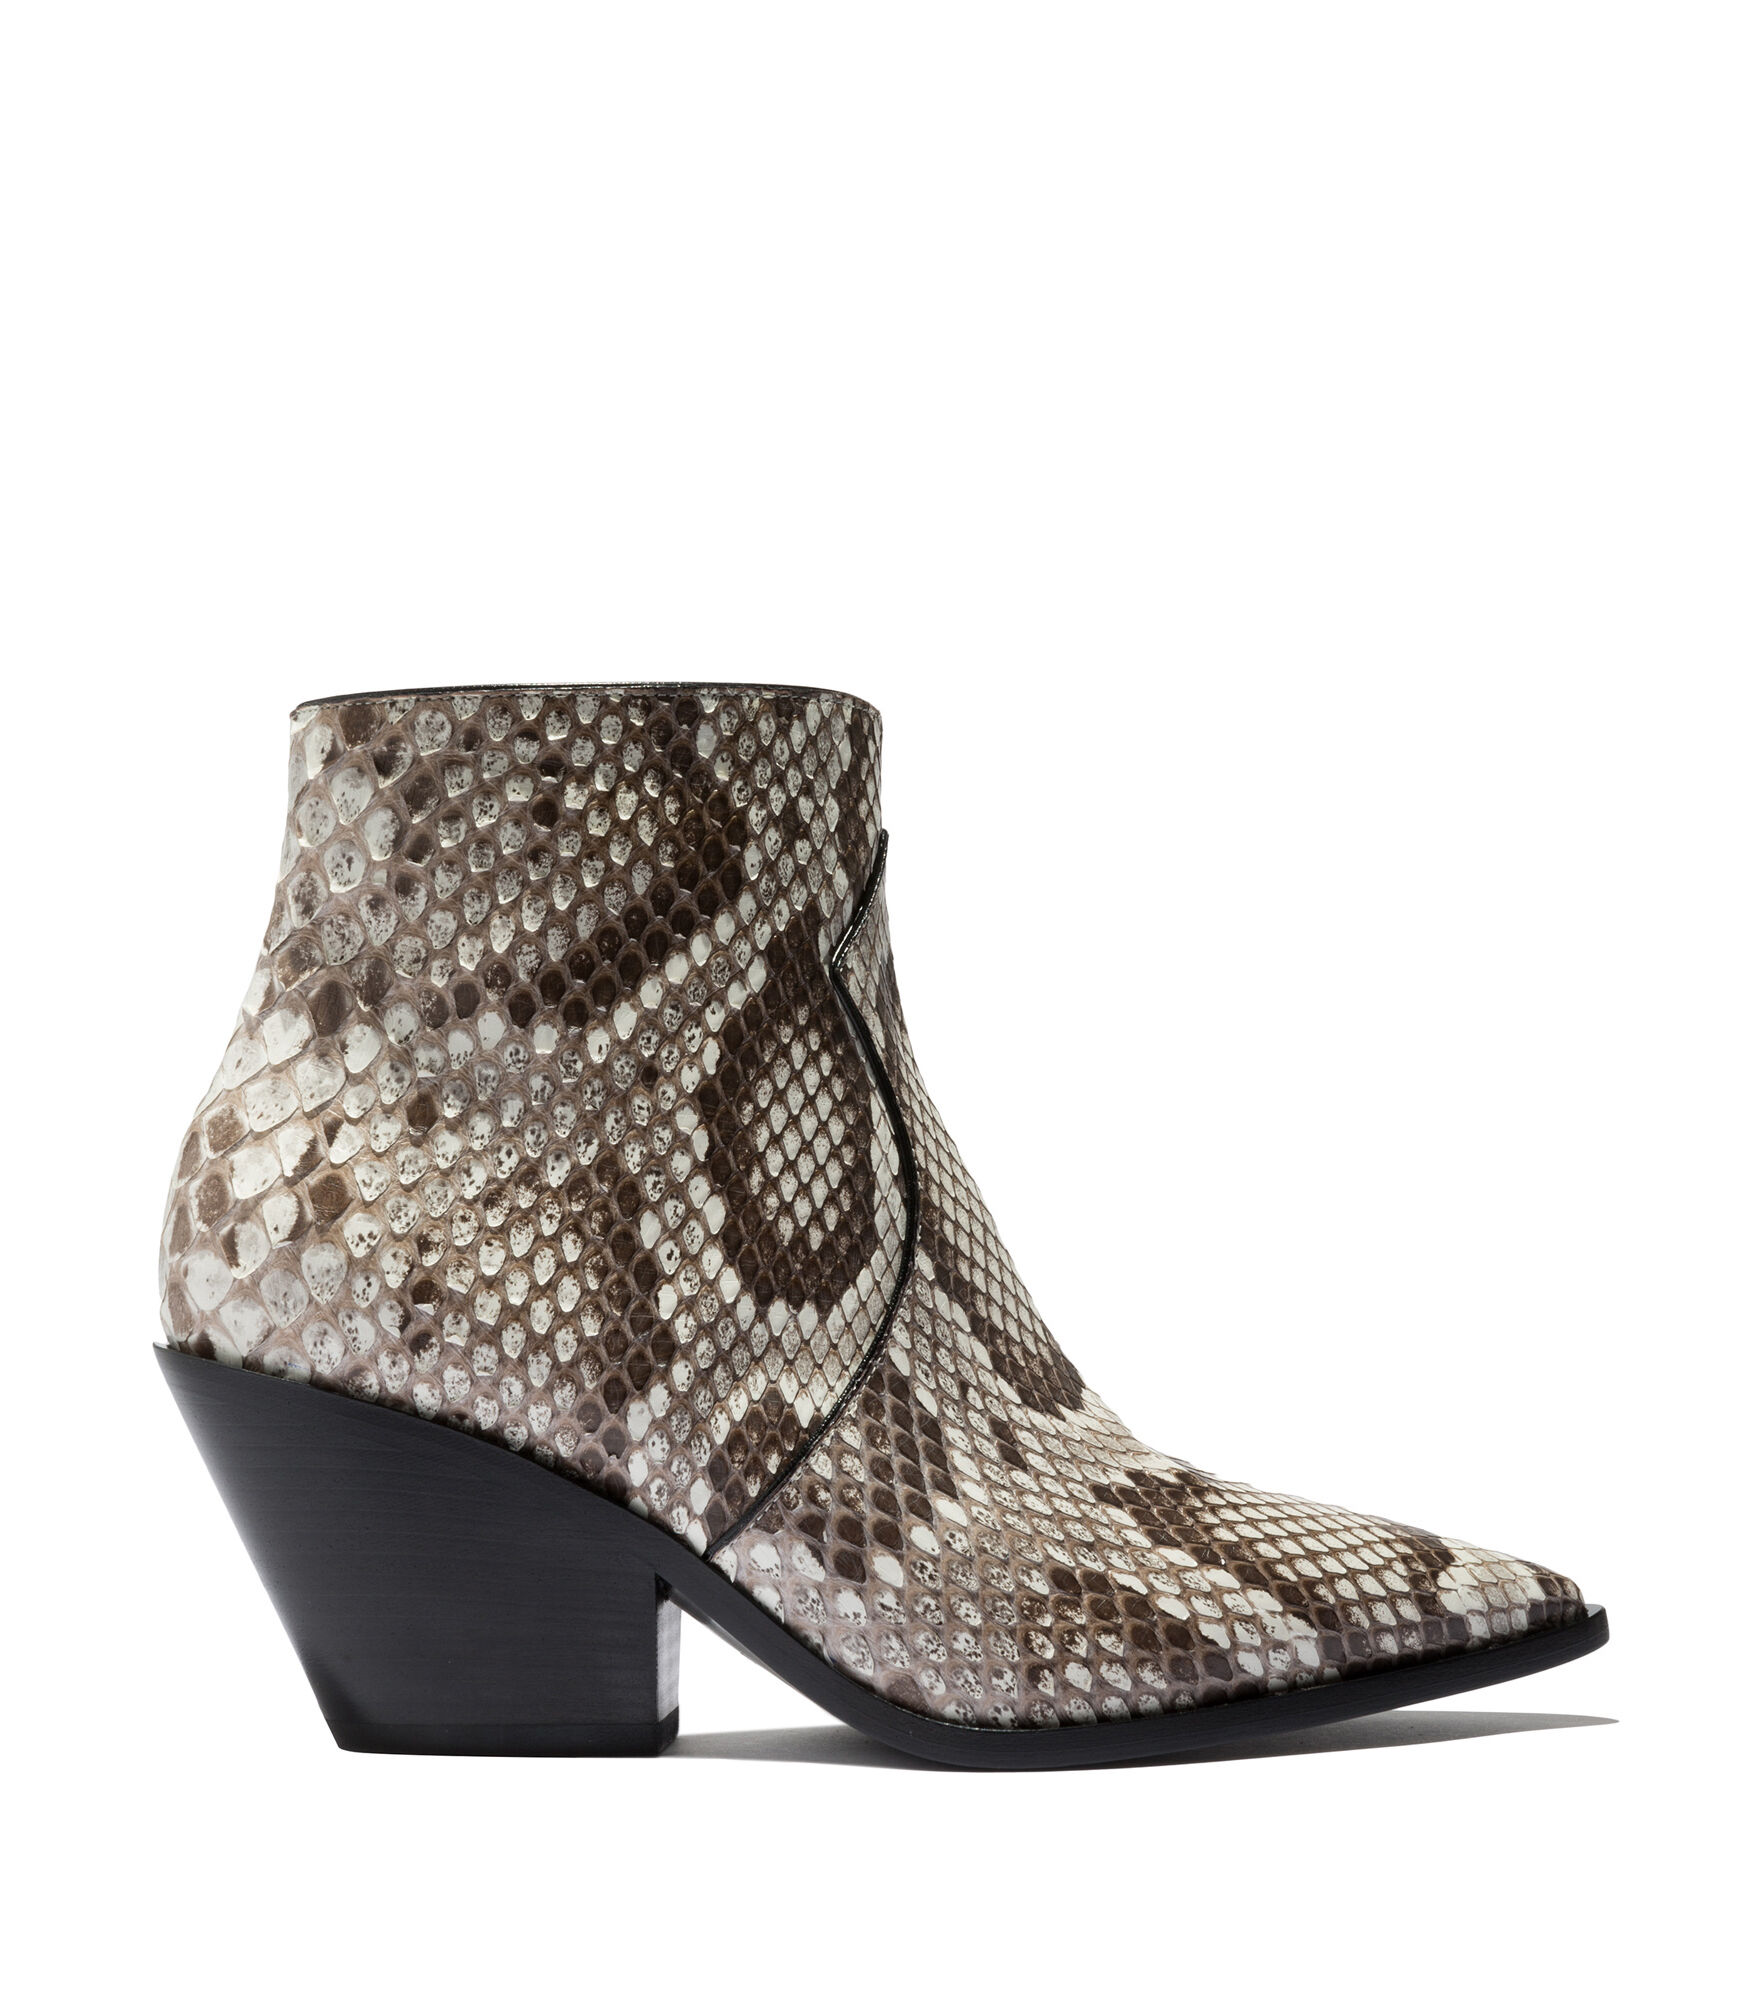 Casadei Ankle Boots - West Black and stone Python